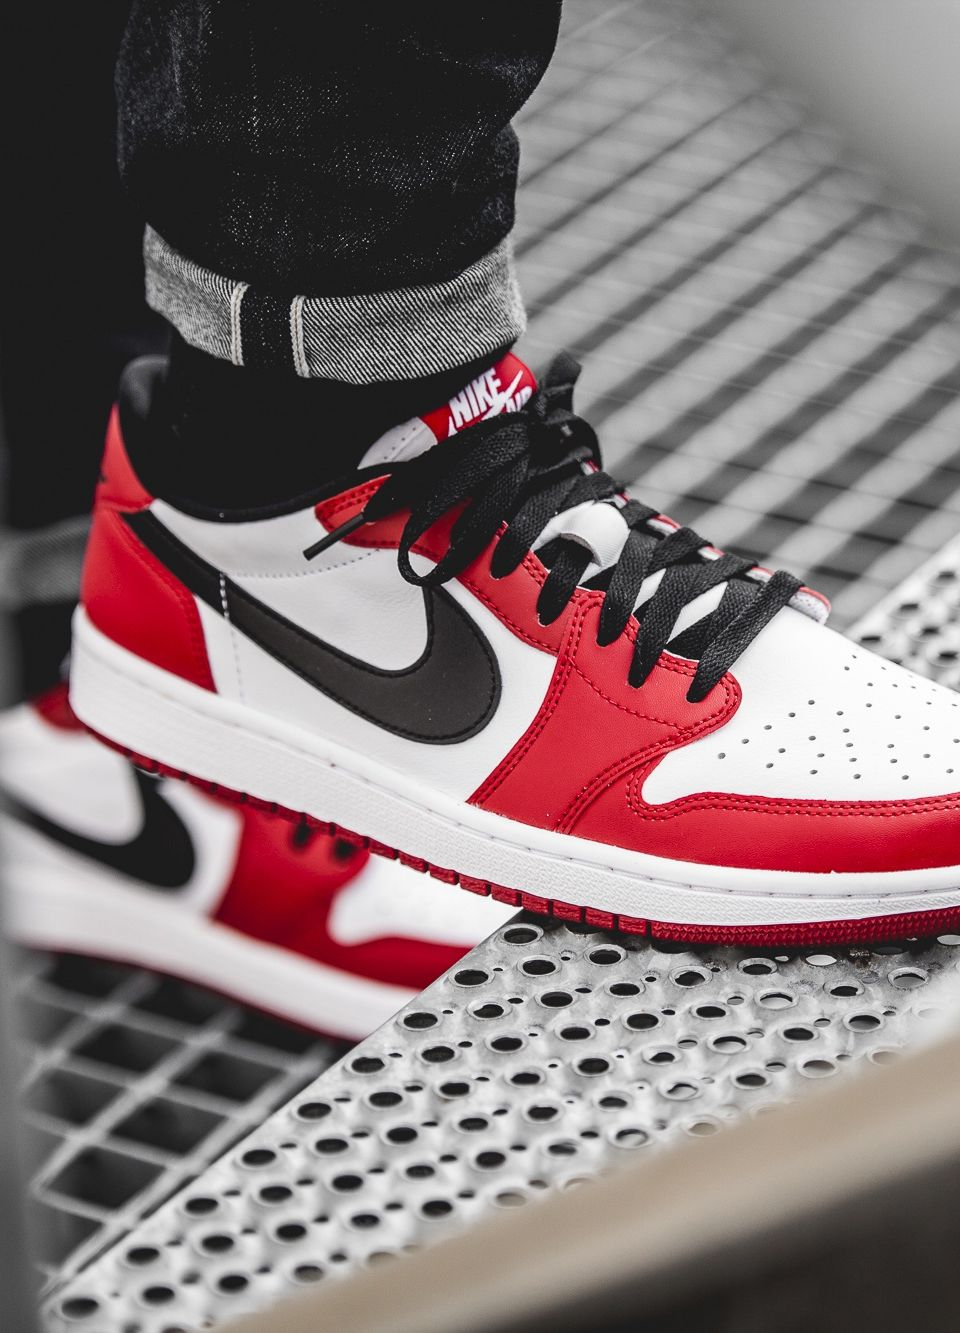 cddc7cdecfa6 Nike Air Jordan 1 Retro Low OG Chicago  sneakernews  Sneakers  StreetStyle   Kicks